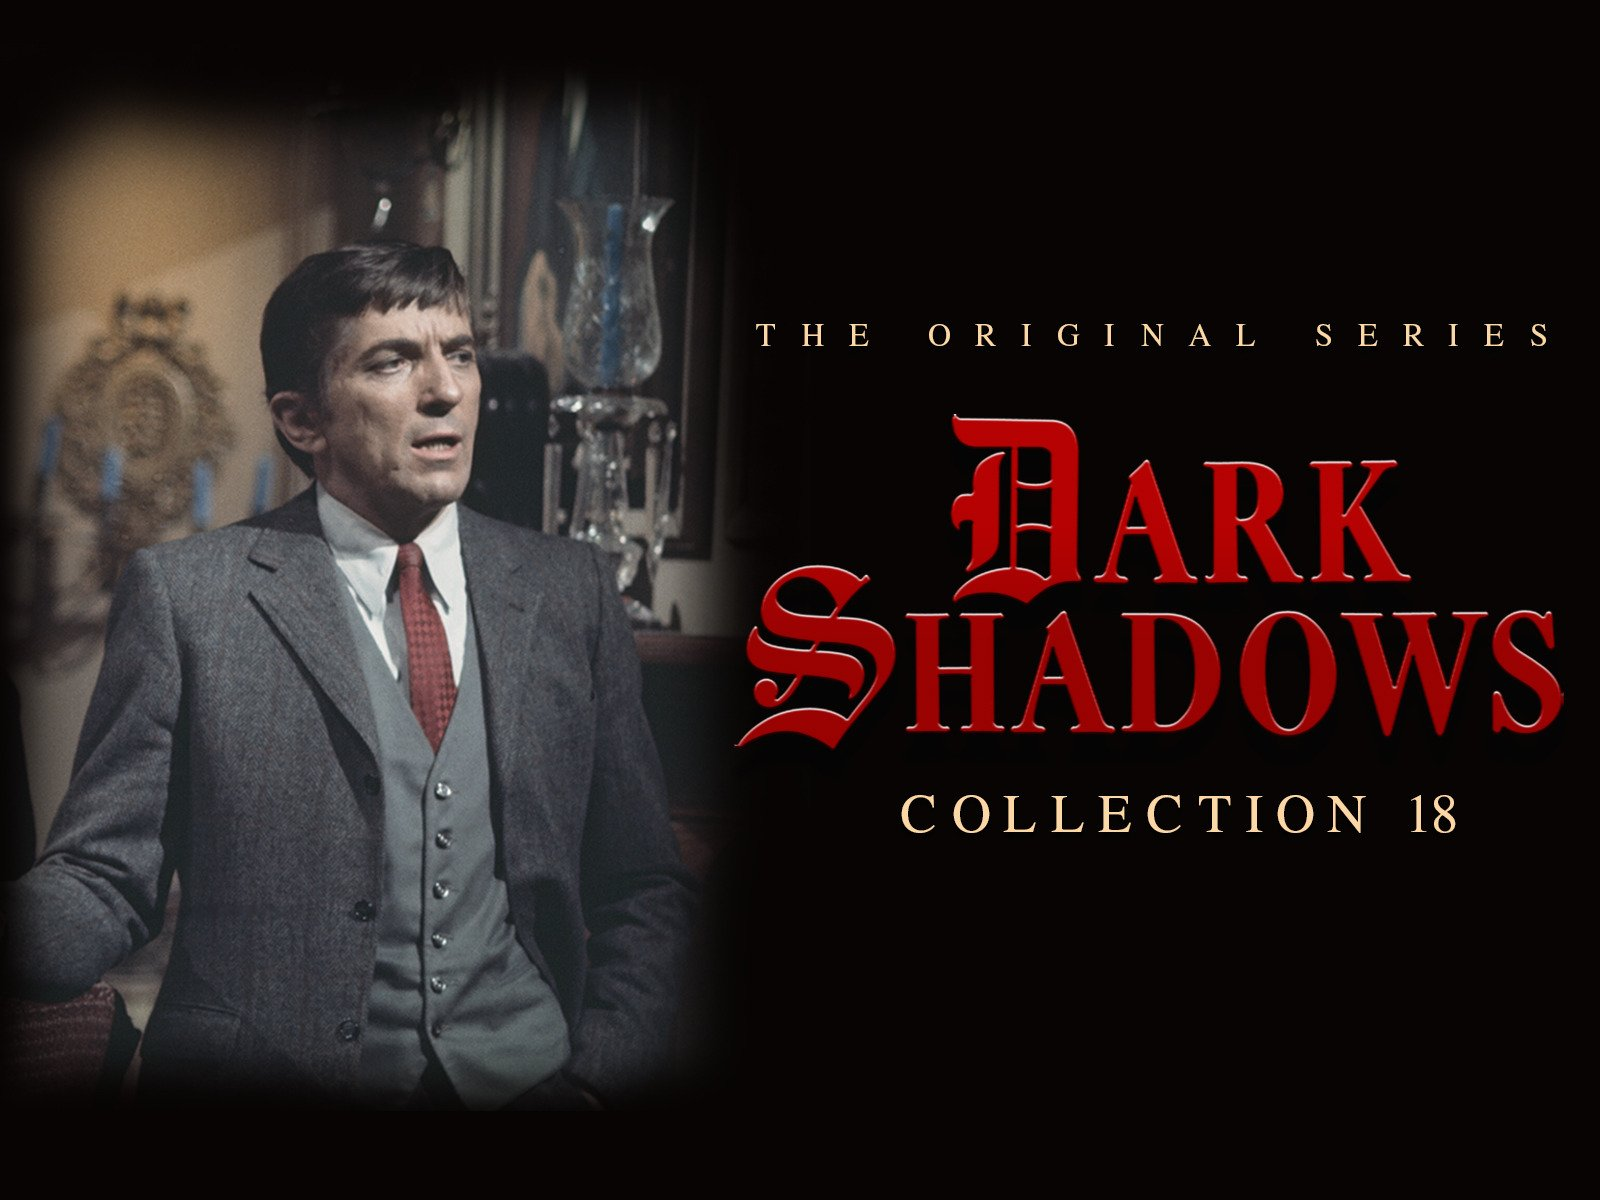 Dark Shadows - Season 18